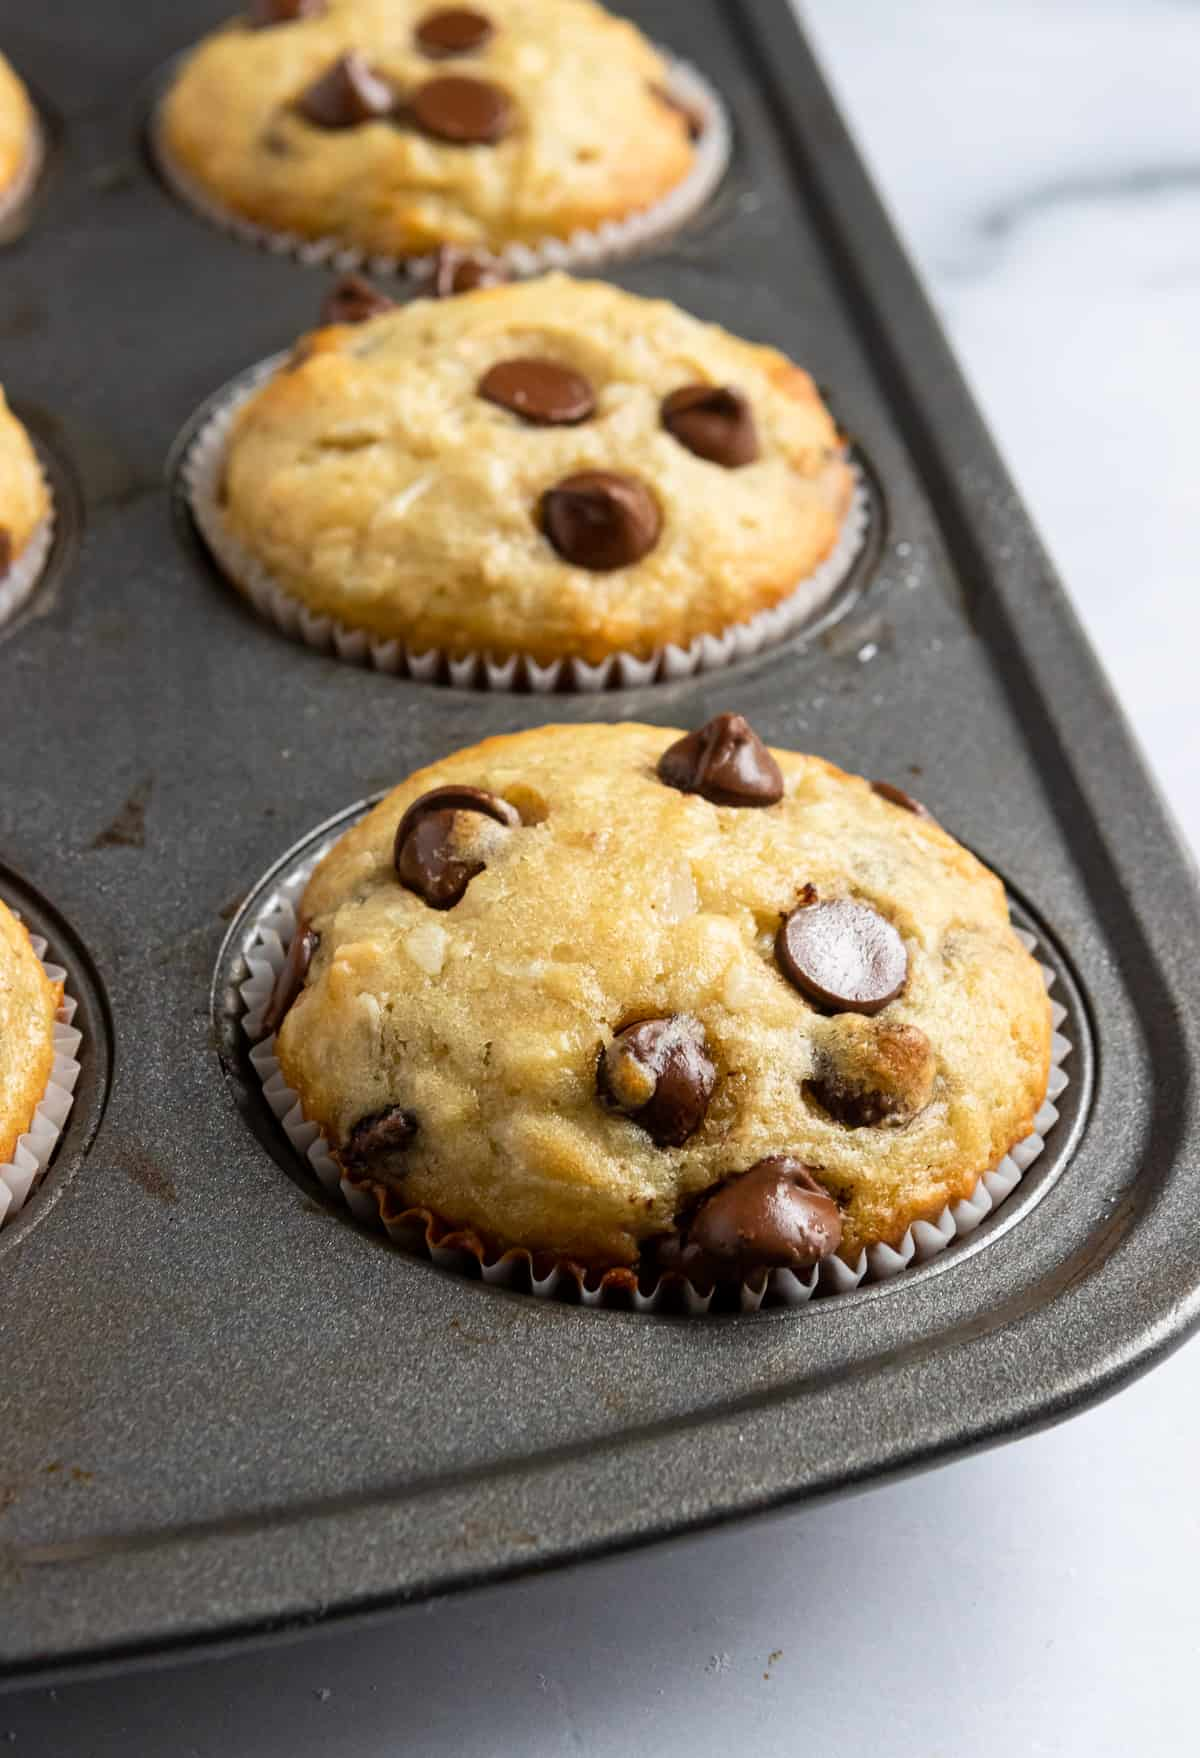 Fresh muffins in muffin tin.